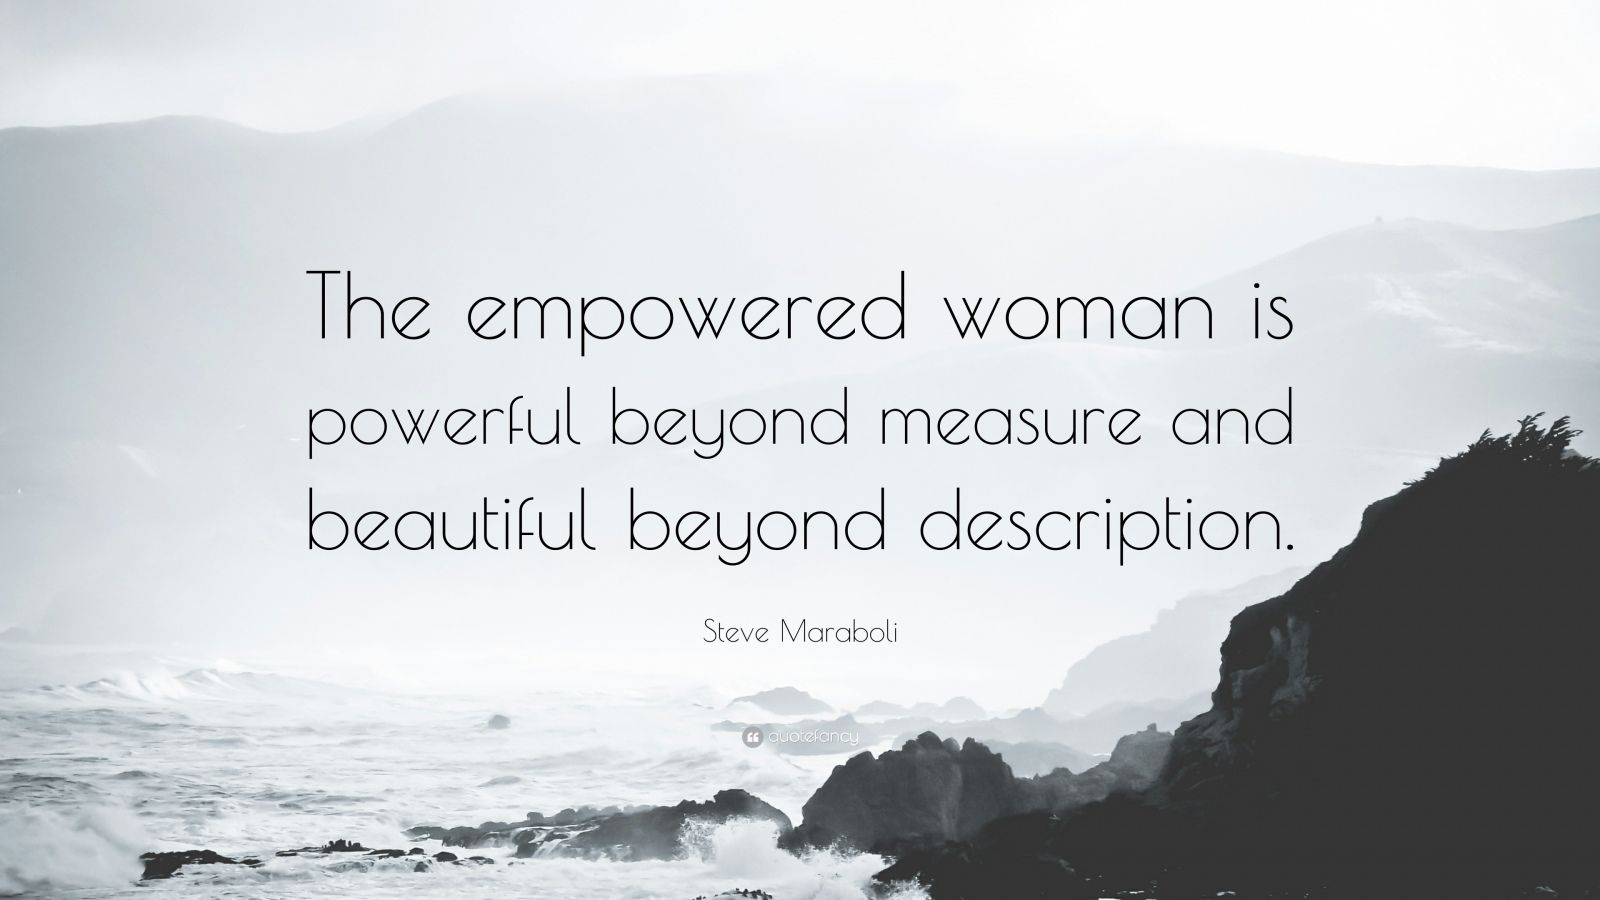 Steve Maraboli Quote The Empowered Woman Is Powerful Beyond Measure And Beautiful Description